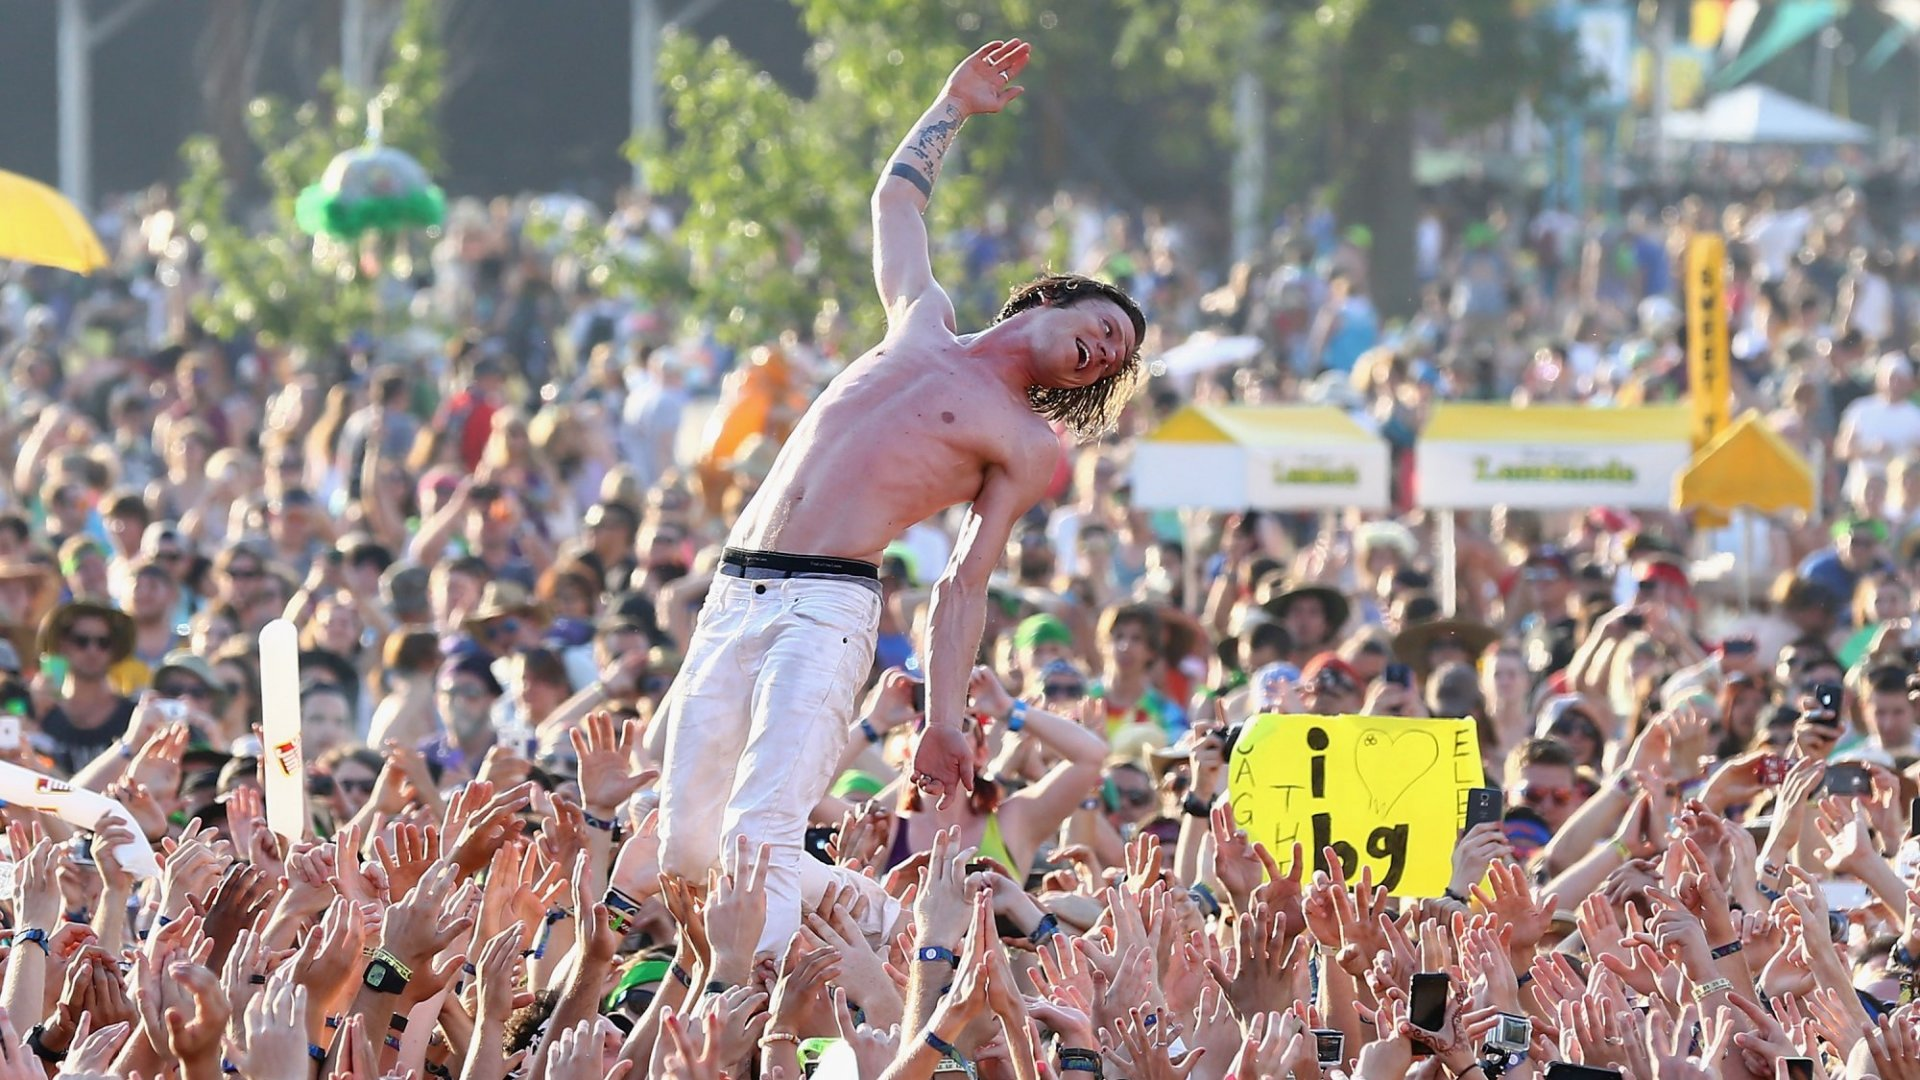 Bonnaroo: How to Build a Loyal Community Through a Culturally Relevant Brand